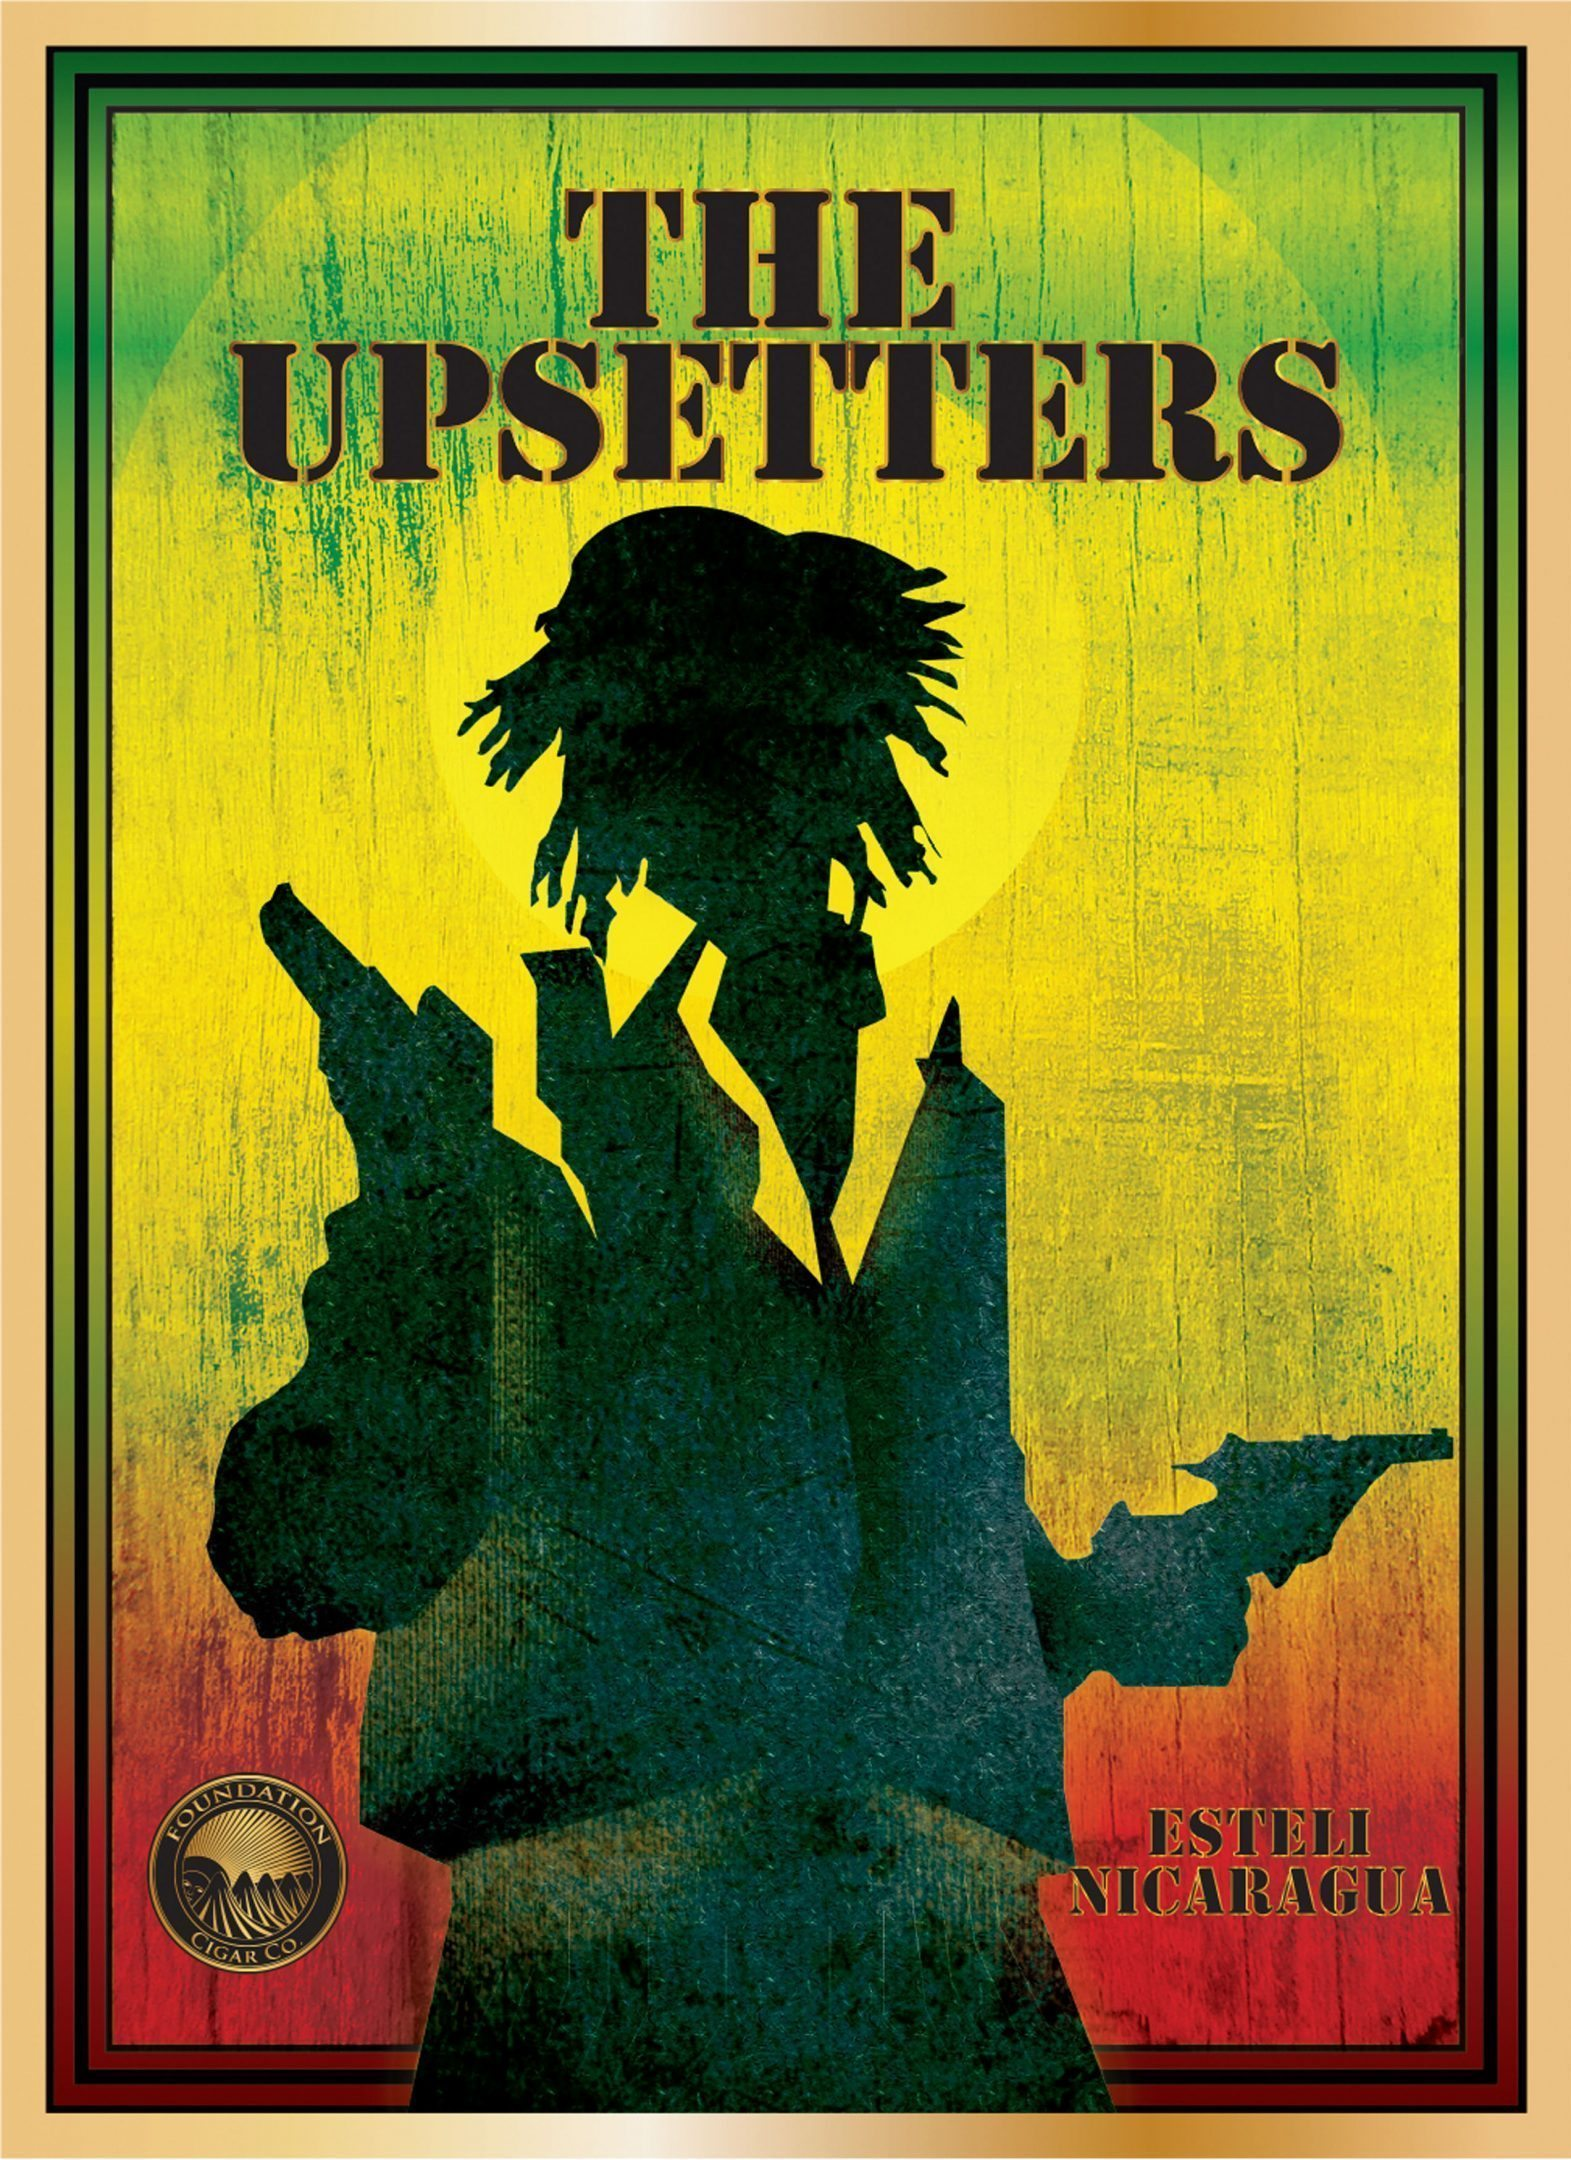 Cigar News: Miami Cigar to Distribute Upsetters by Foundation